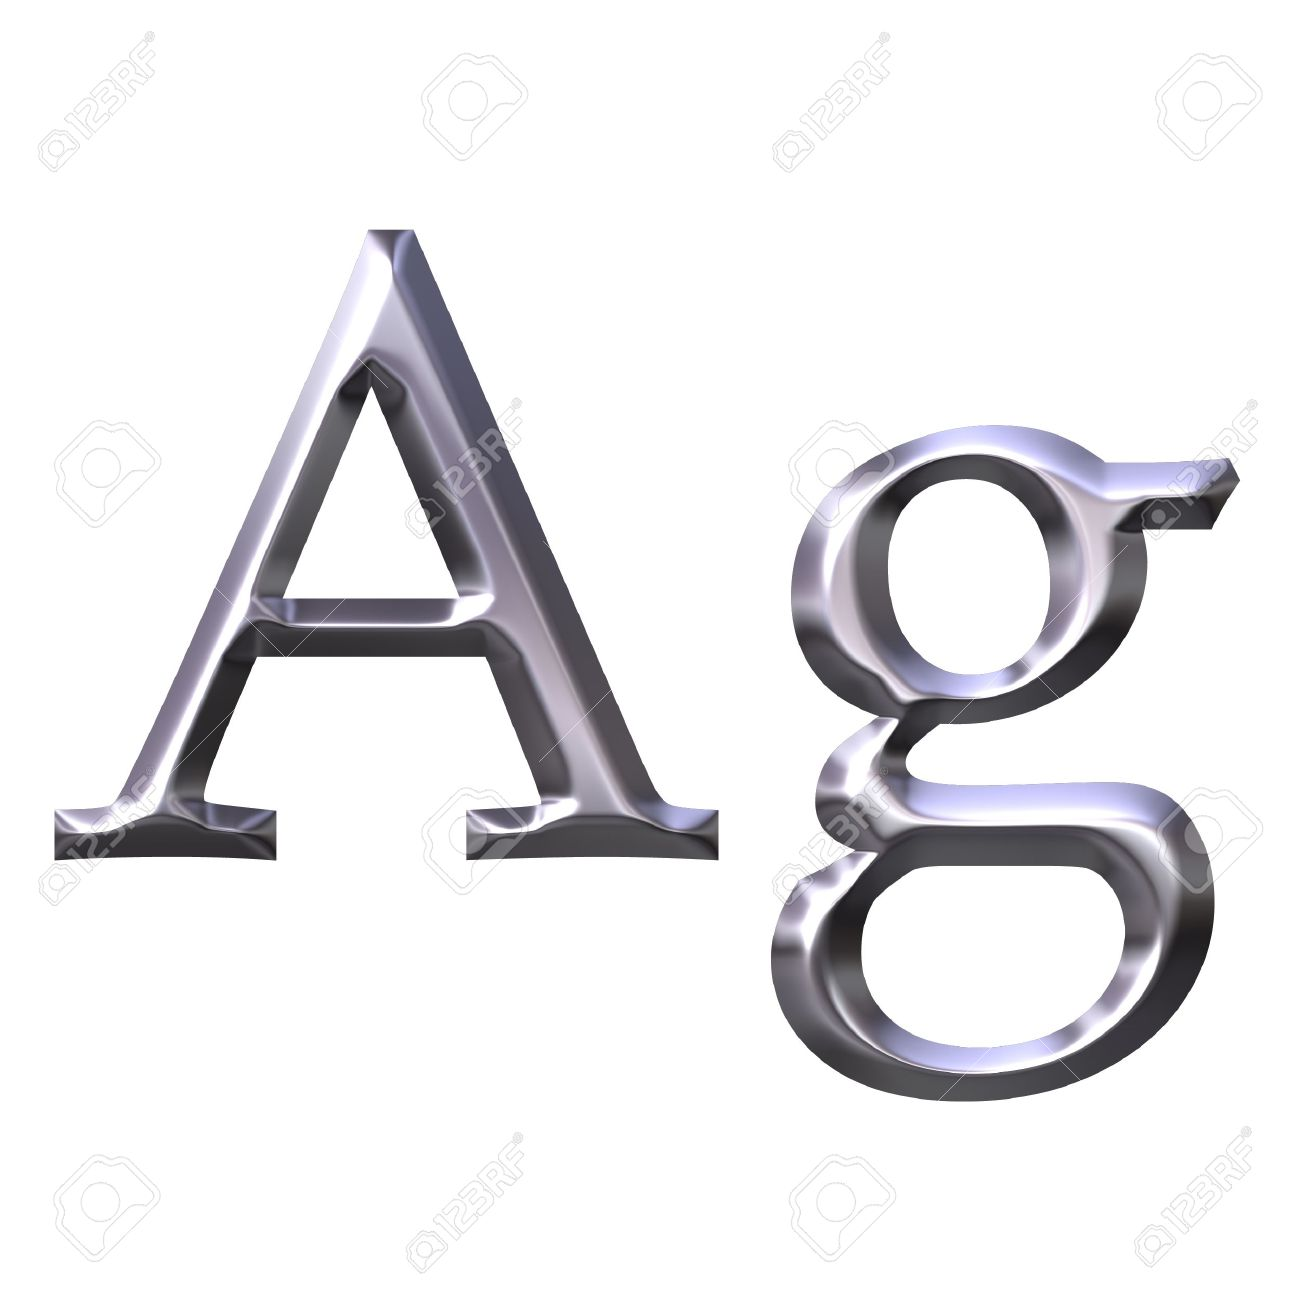 Silver symbol stock photo picture and royalty free image image silver symbol stock photo 1158182 biocorpaavc